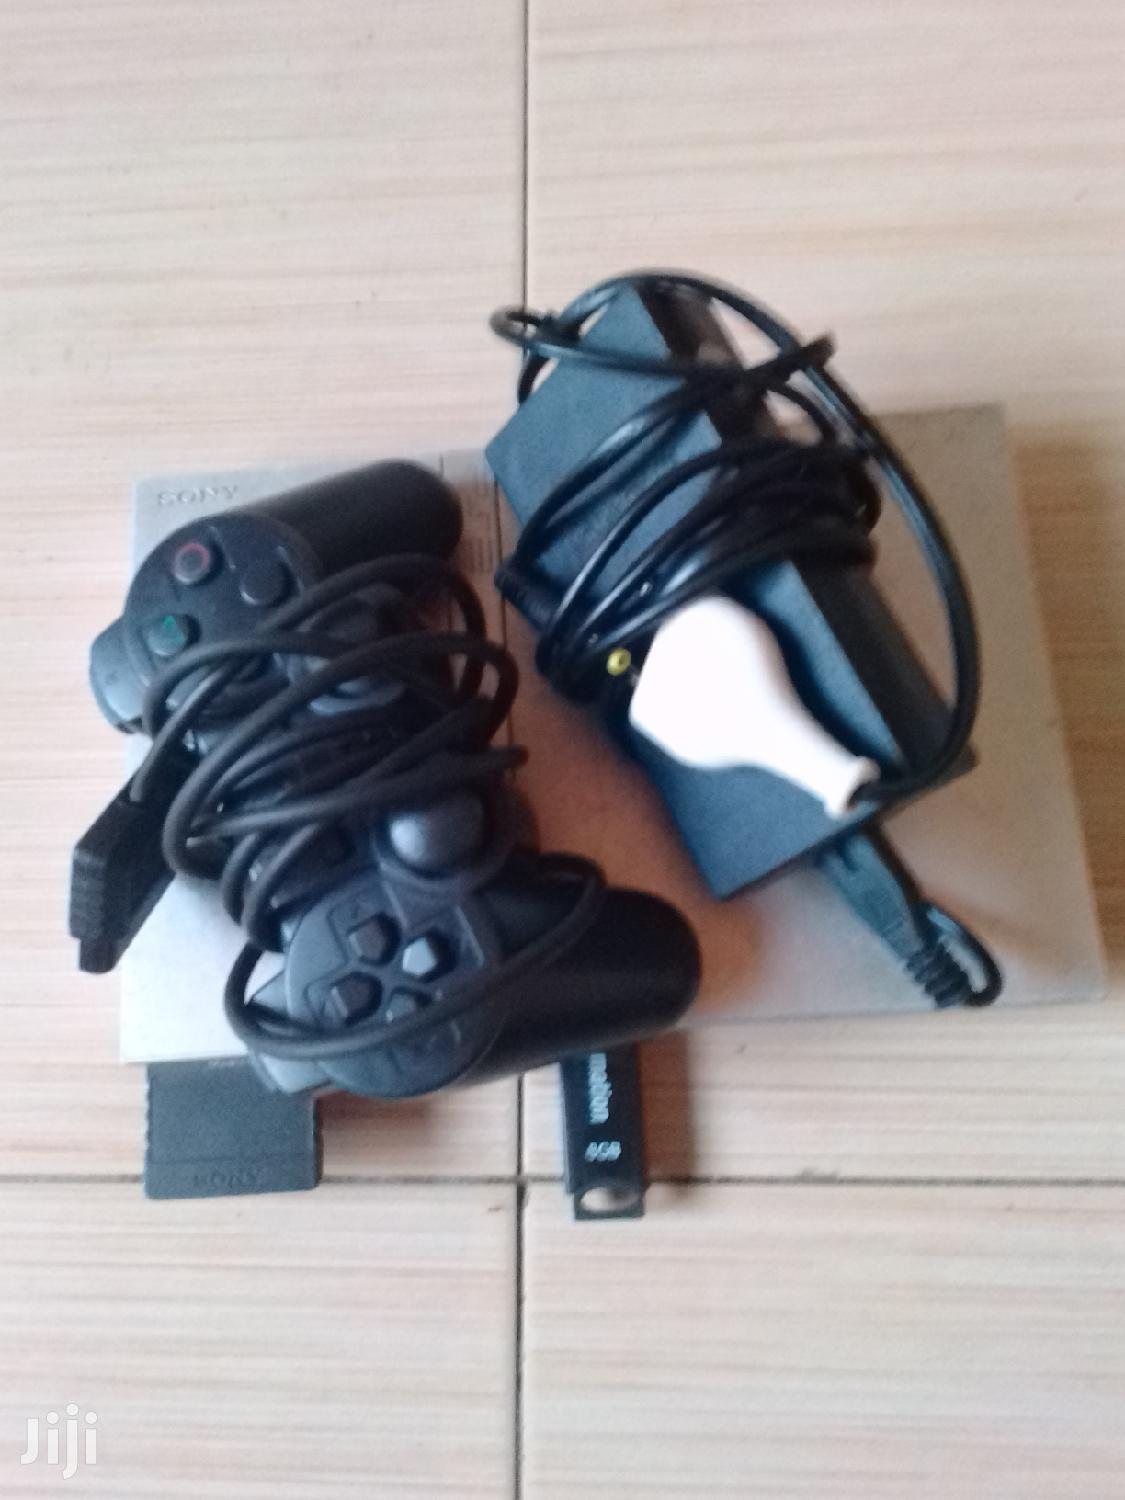 Sony Ps 2 Console | Video Game Consoles for sale in Awutu Senya East Municipal, Central Region, Ghana